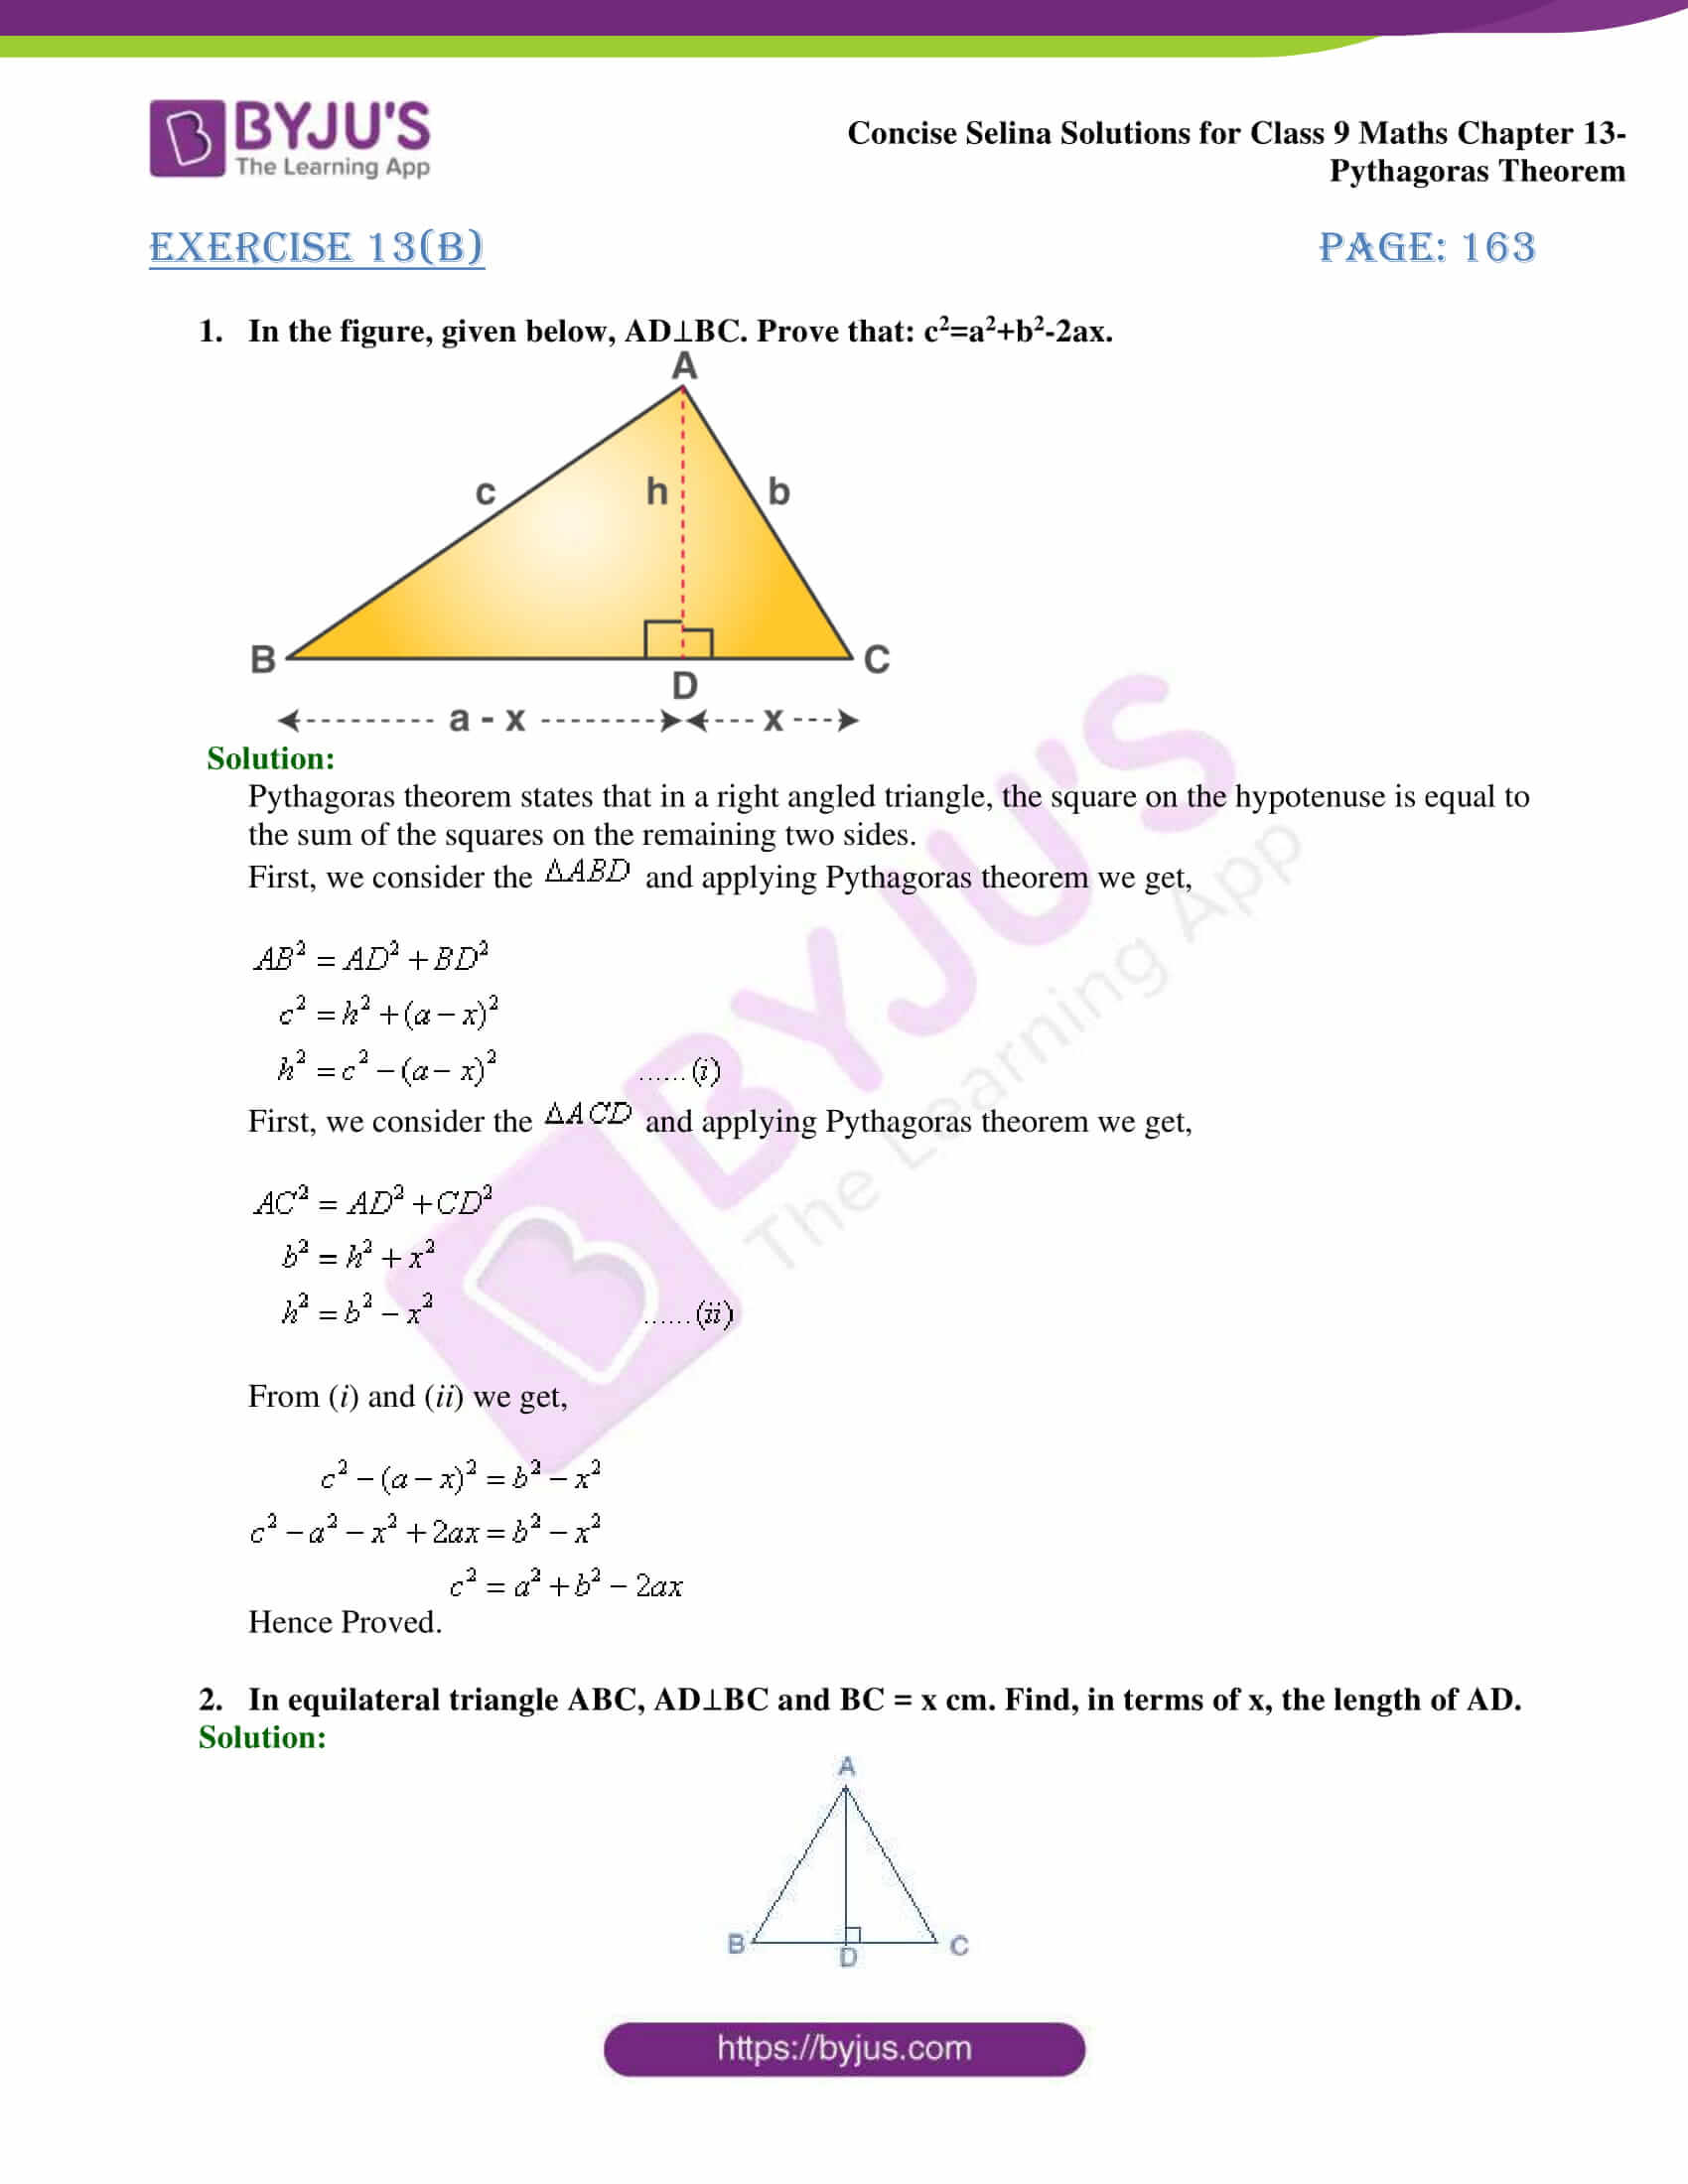 selina Solutions for Class 9 Maths Chapter 13 part 10